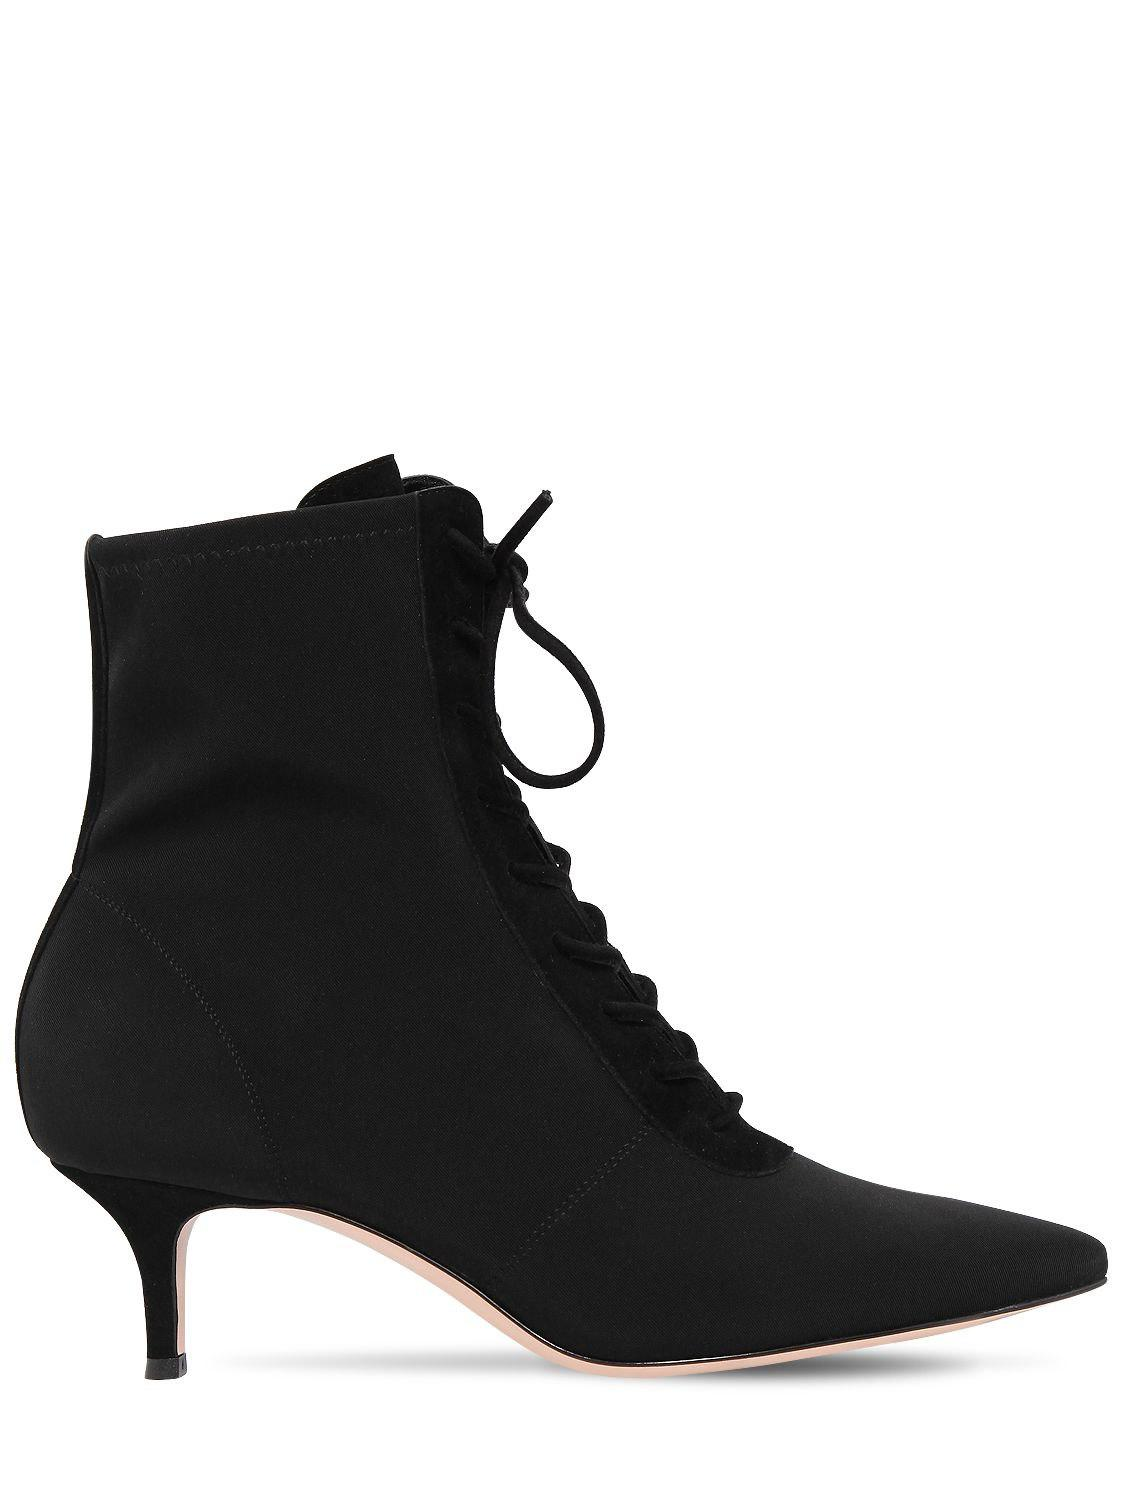 8a27bc2cf5c8 Gianvito Rossi 55mm Stretch Jersey Lace-up Ankle Boots in Black - Lyst